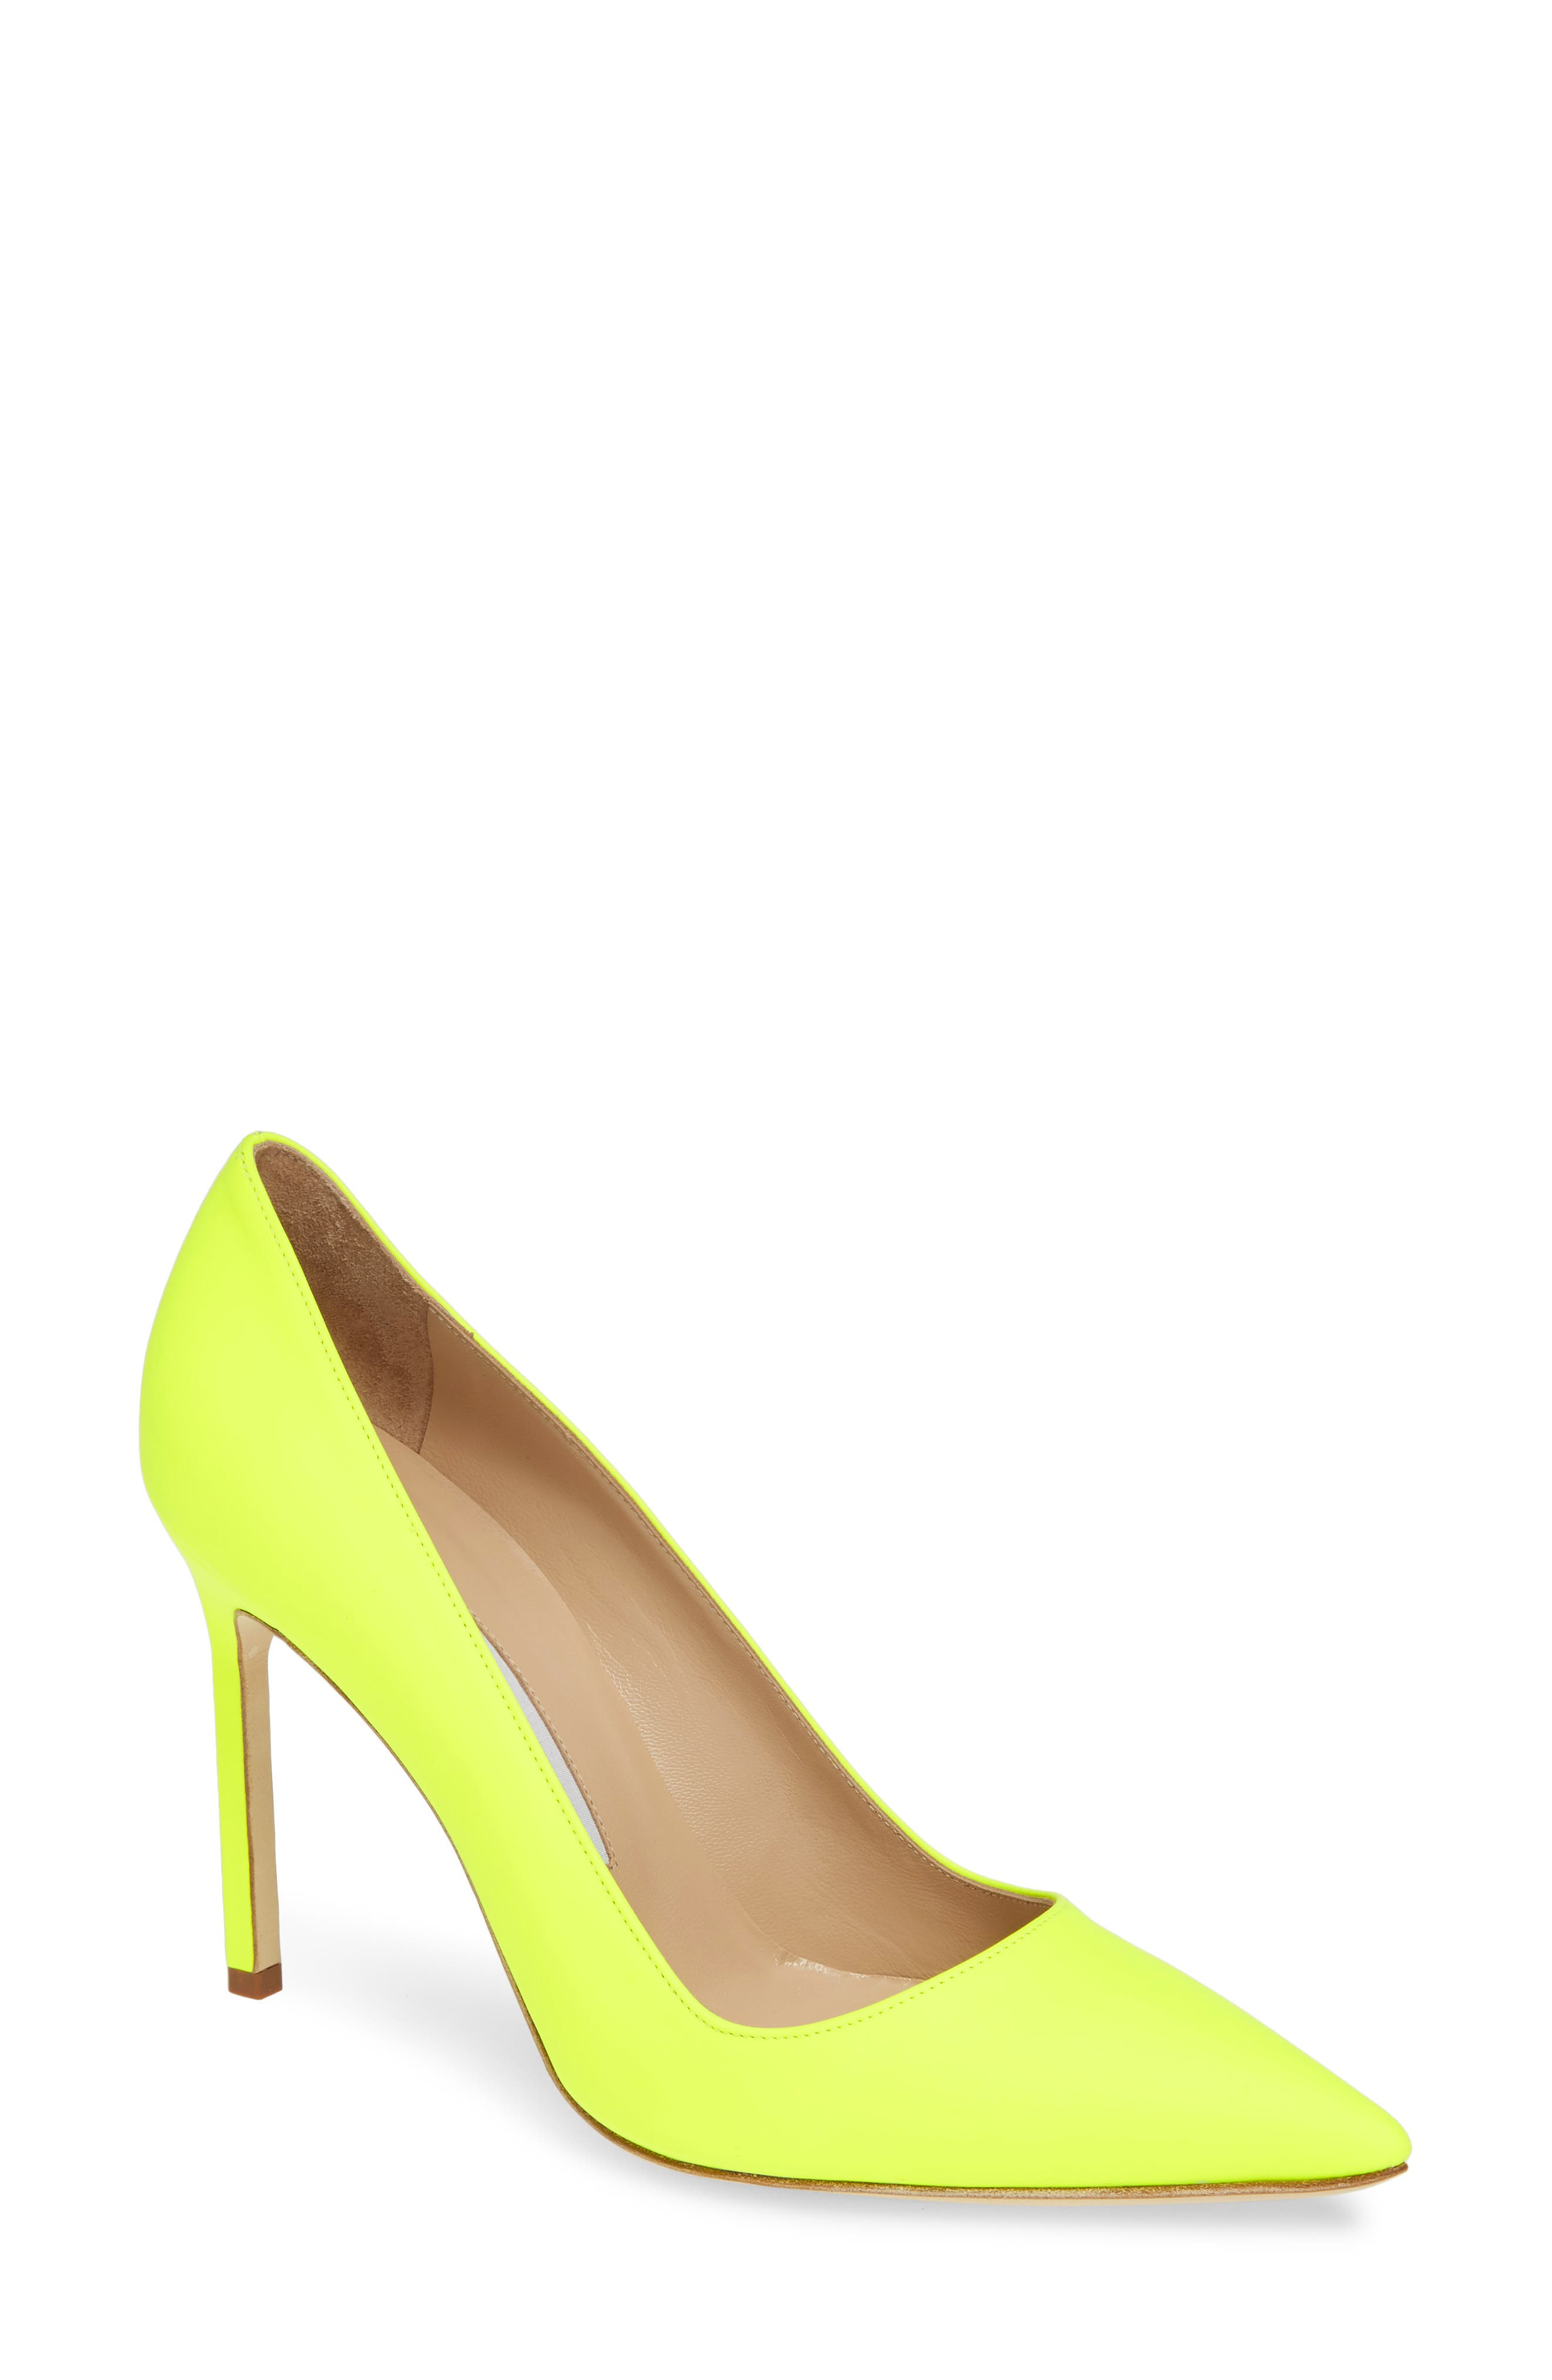 MANOLO BLAHNIK 'BB' Pointy Toe Pump, Main, color, YELLOW PATENT